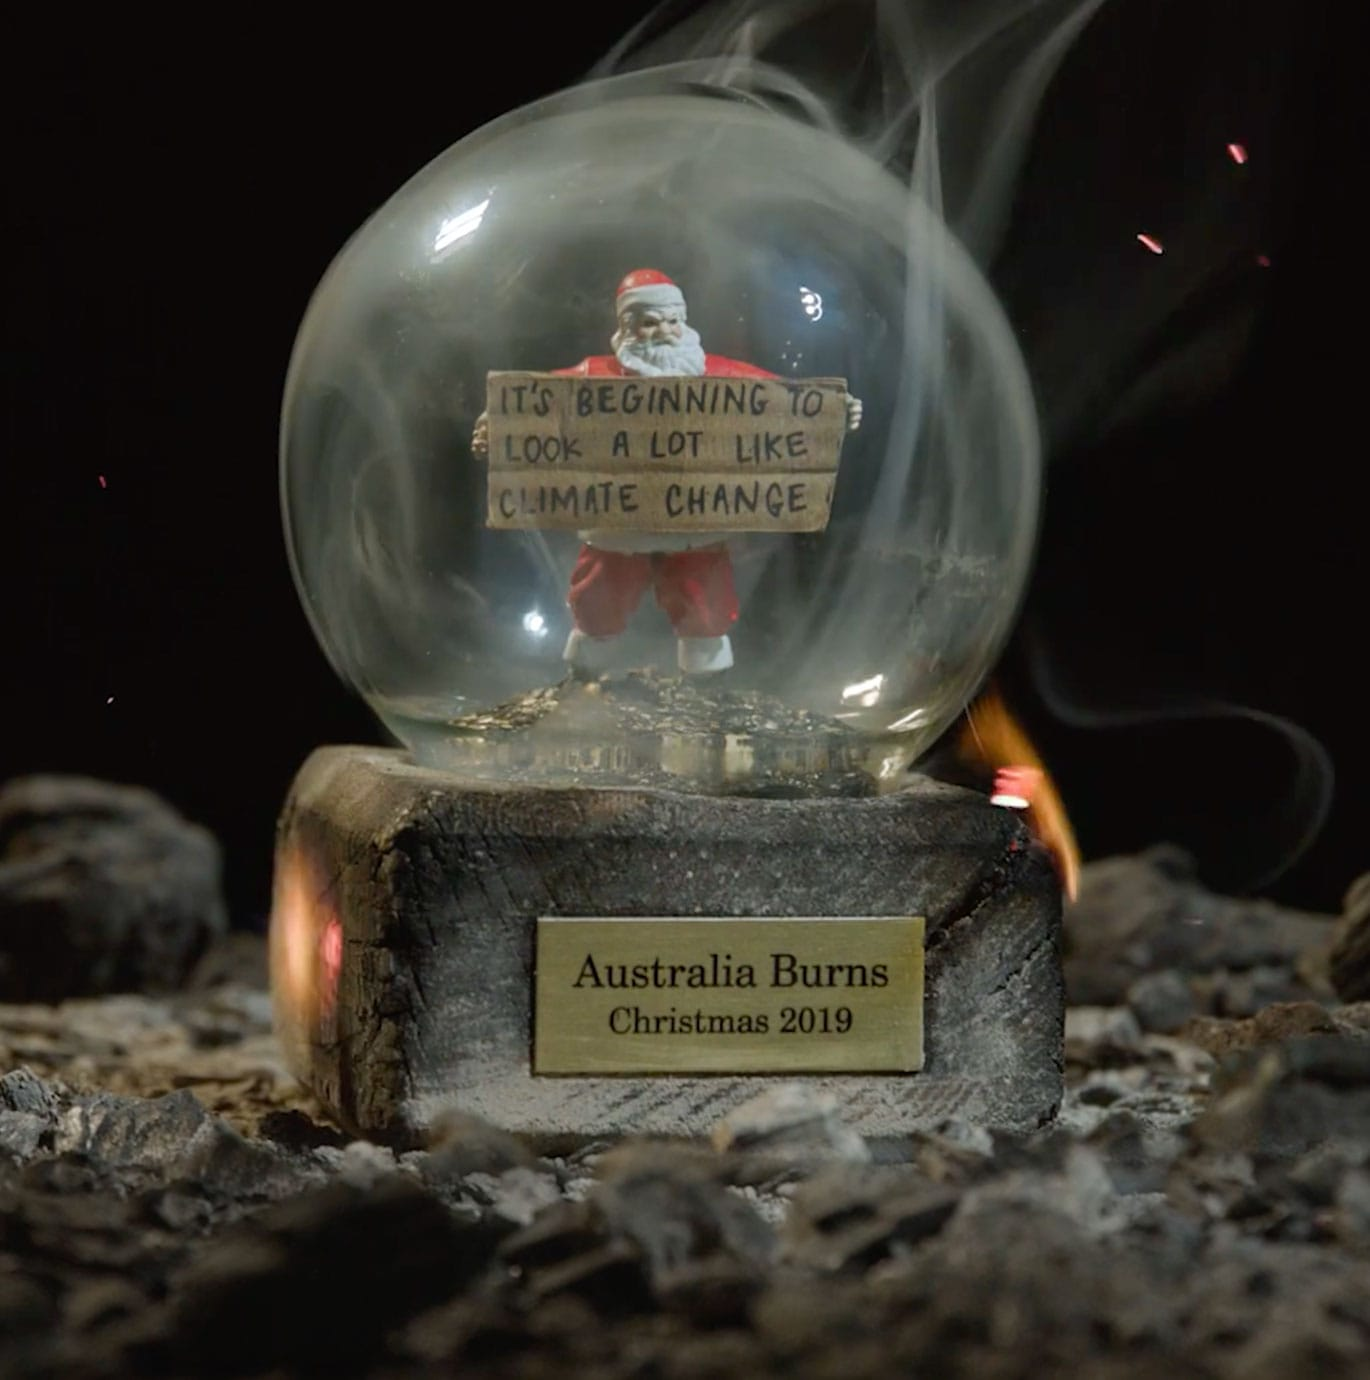 Greanpeace hero image of snow globe filled with ash